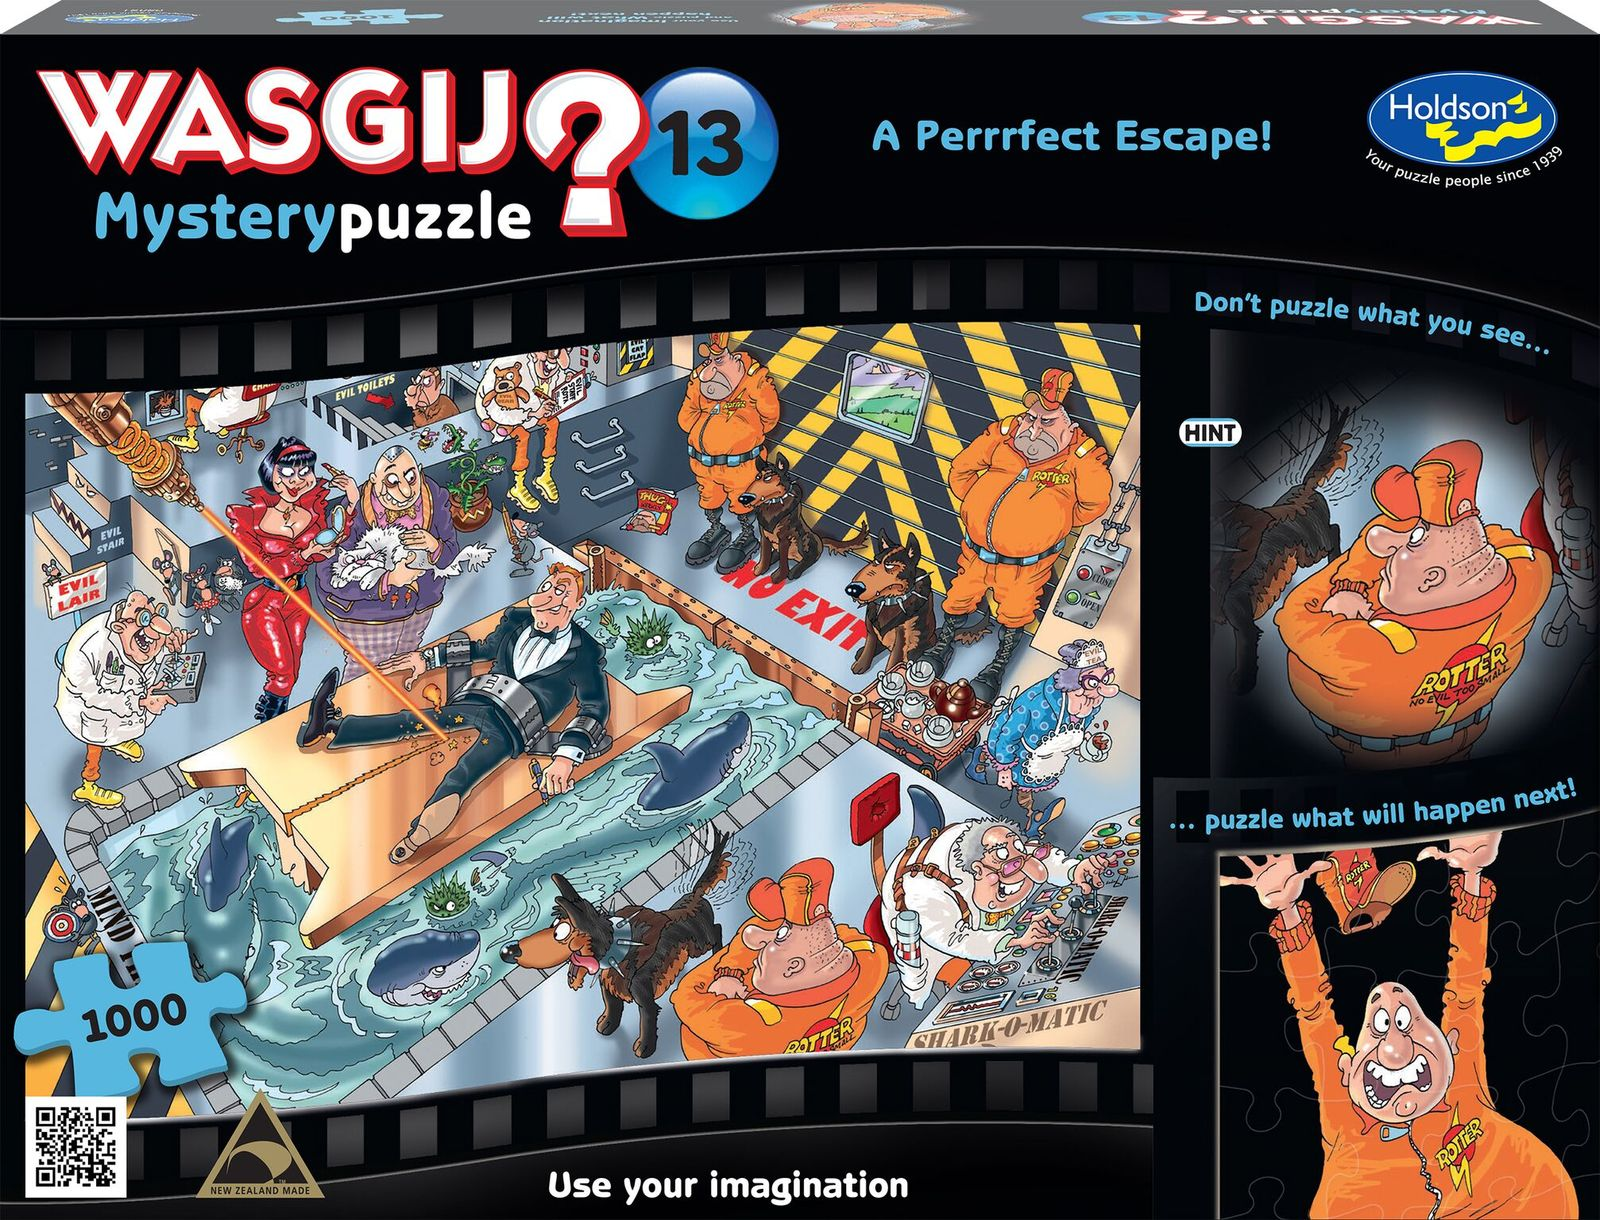 Wasgij: 13 - Mystery A Purrfect Escape 1000 Piece Puzzle image